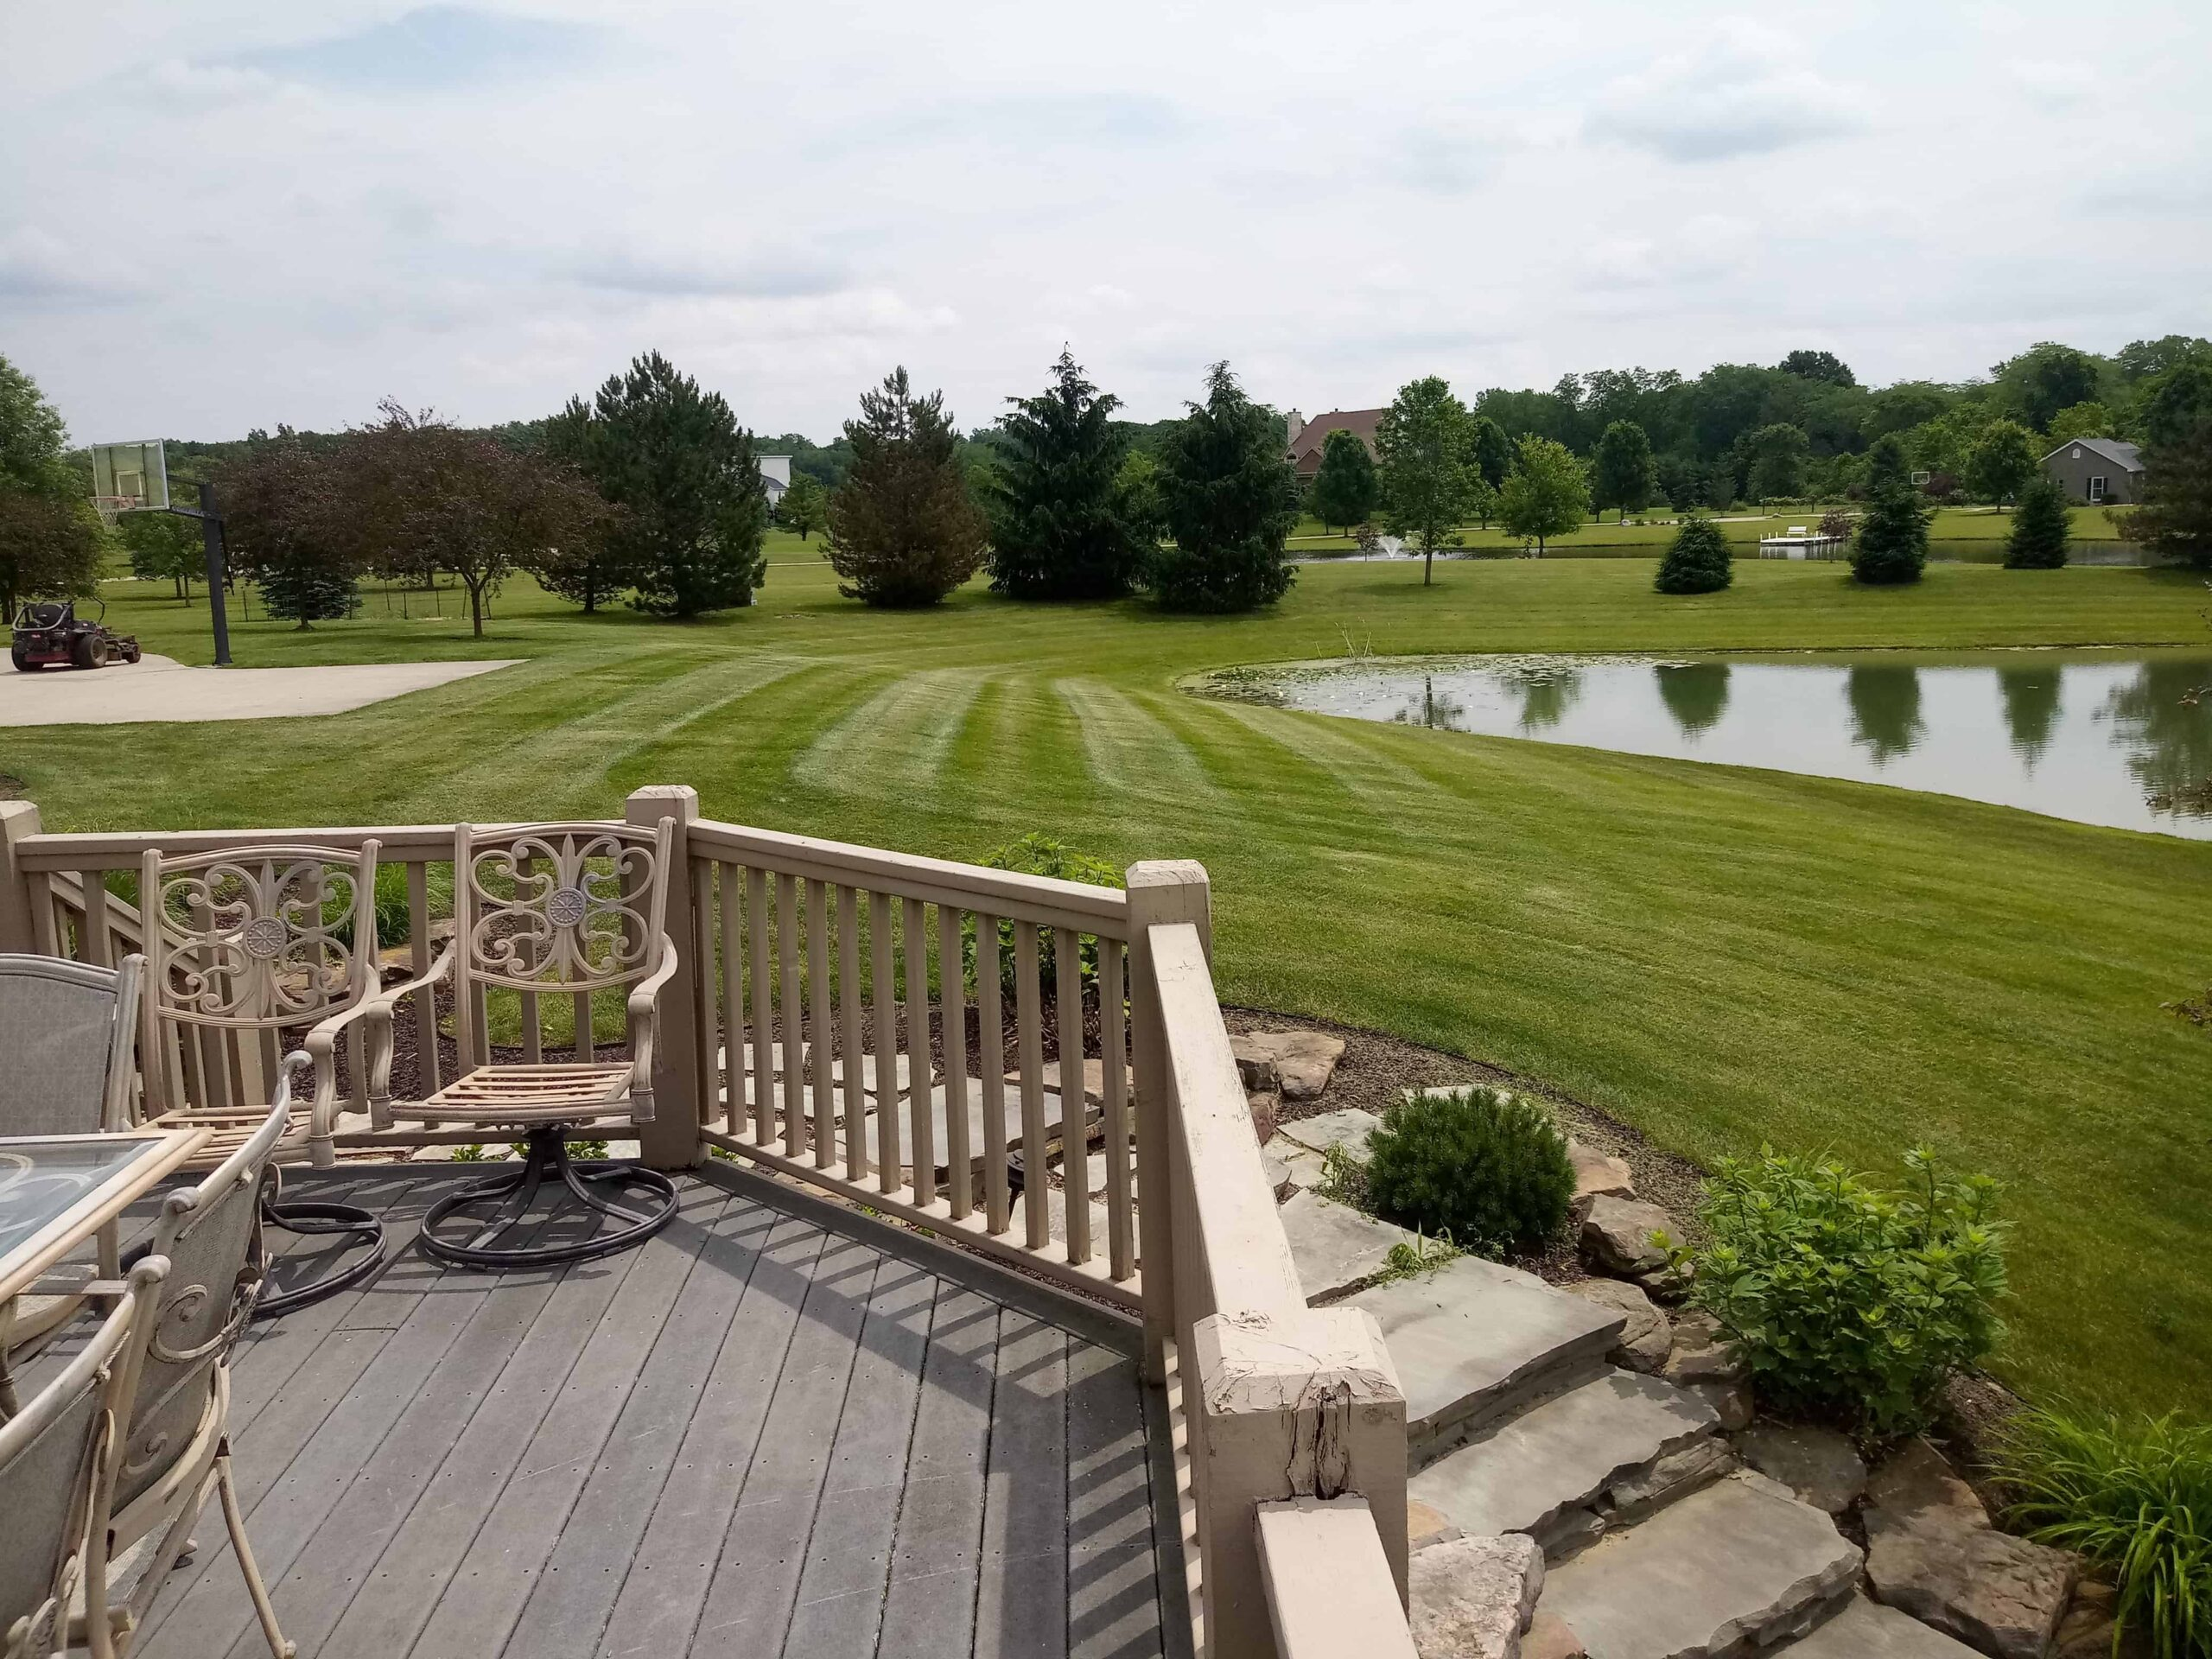 Landscaping, Hardscaping and Mowing Services, Greater Fort Wayne Area